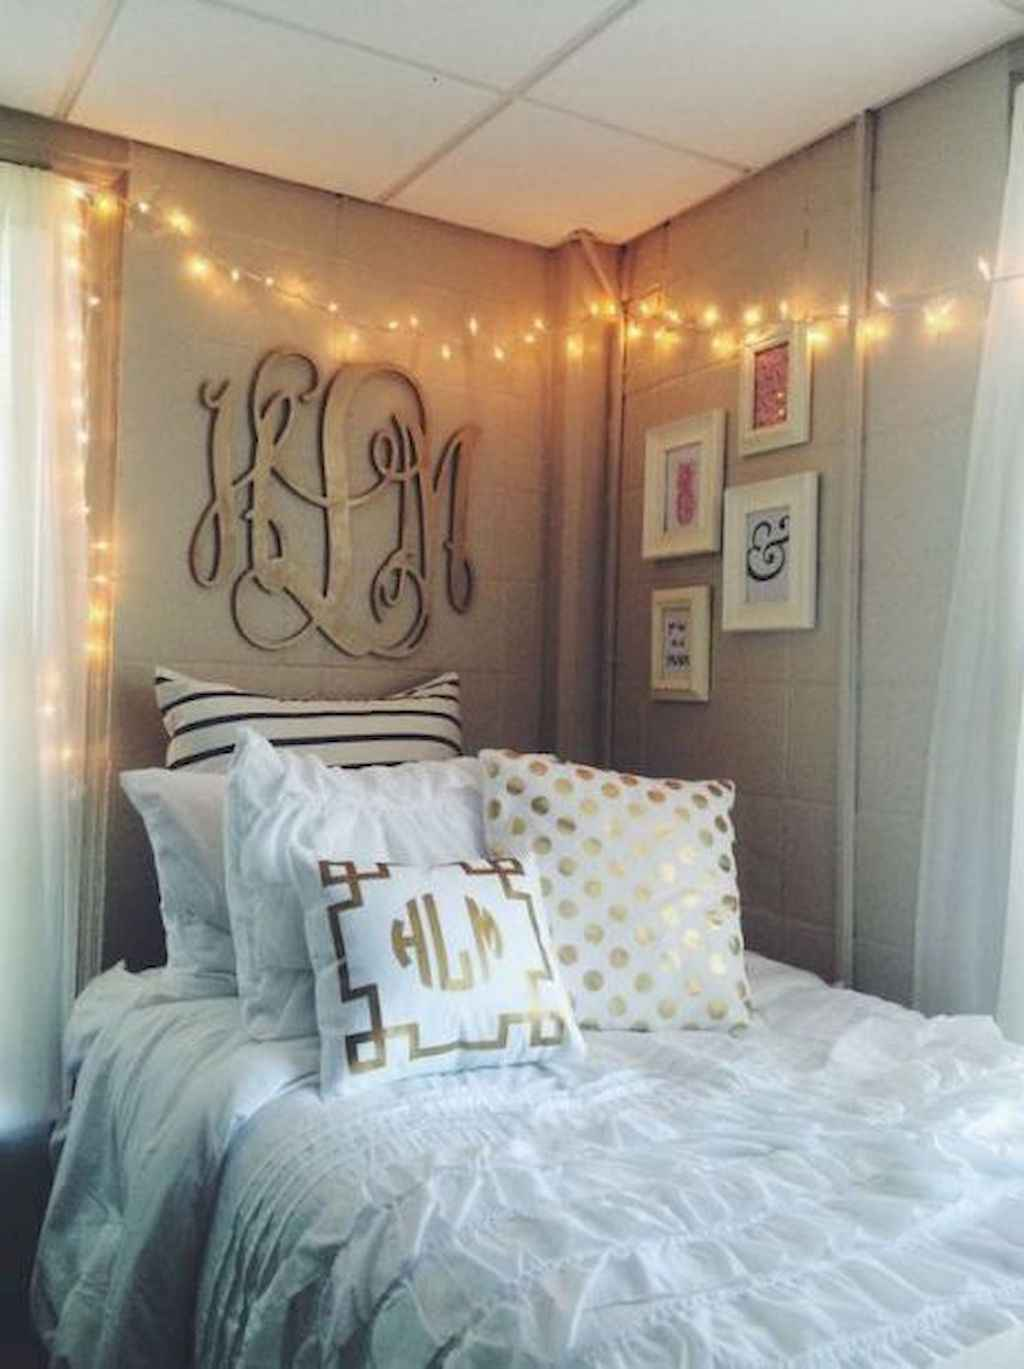 Cute diy dorm room decorating ideas on a budget 11 for Cute room decor ideas diy